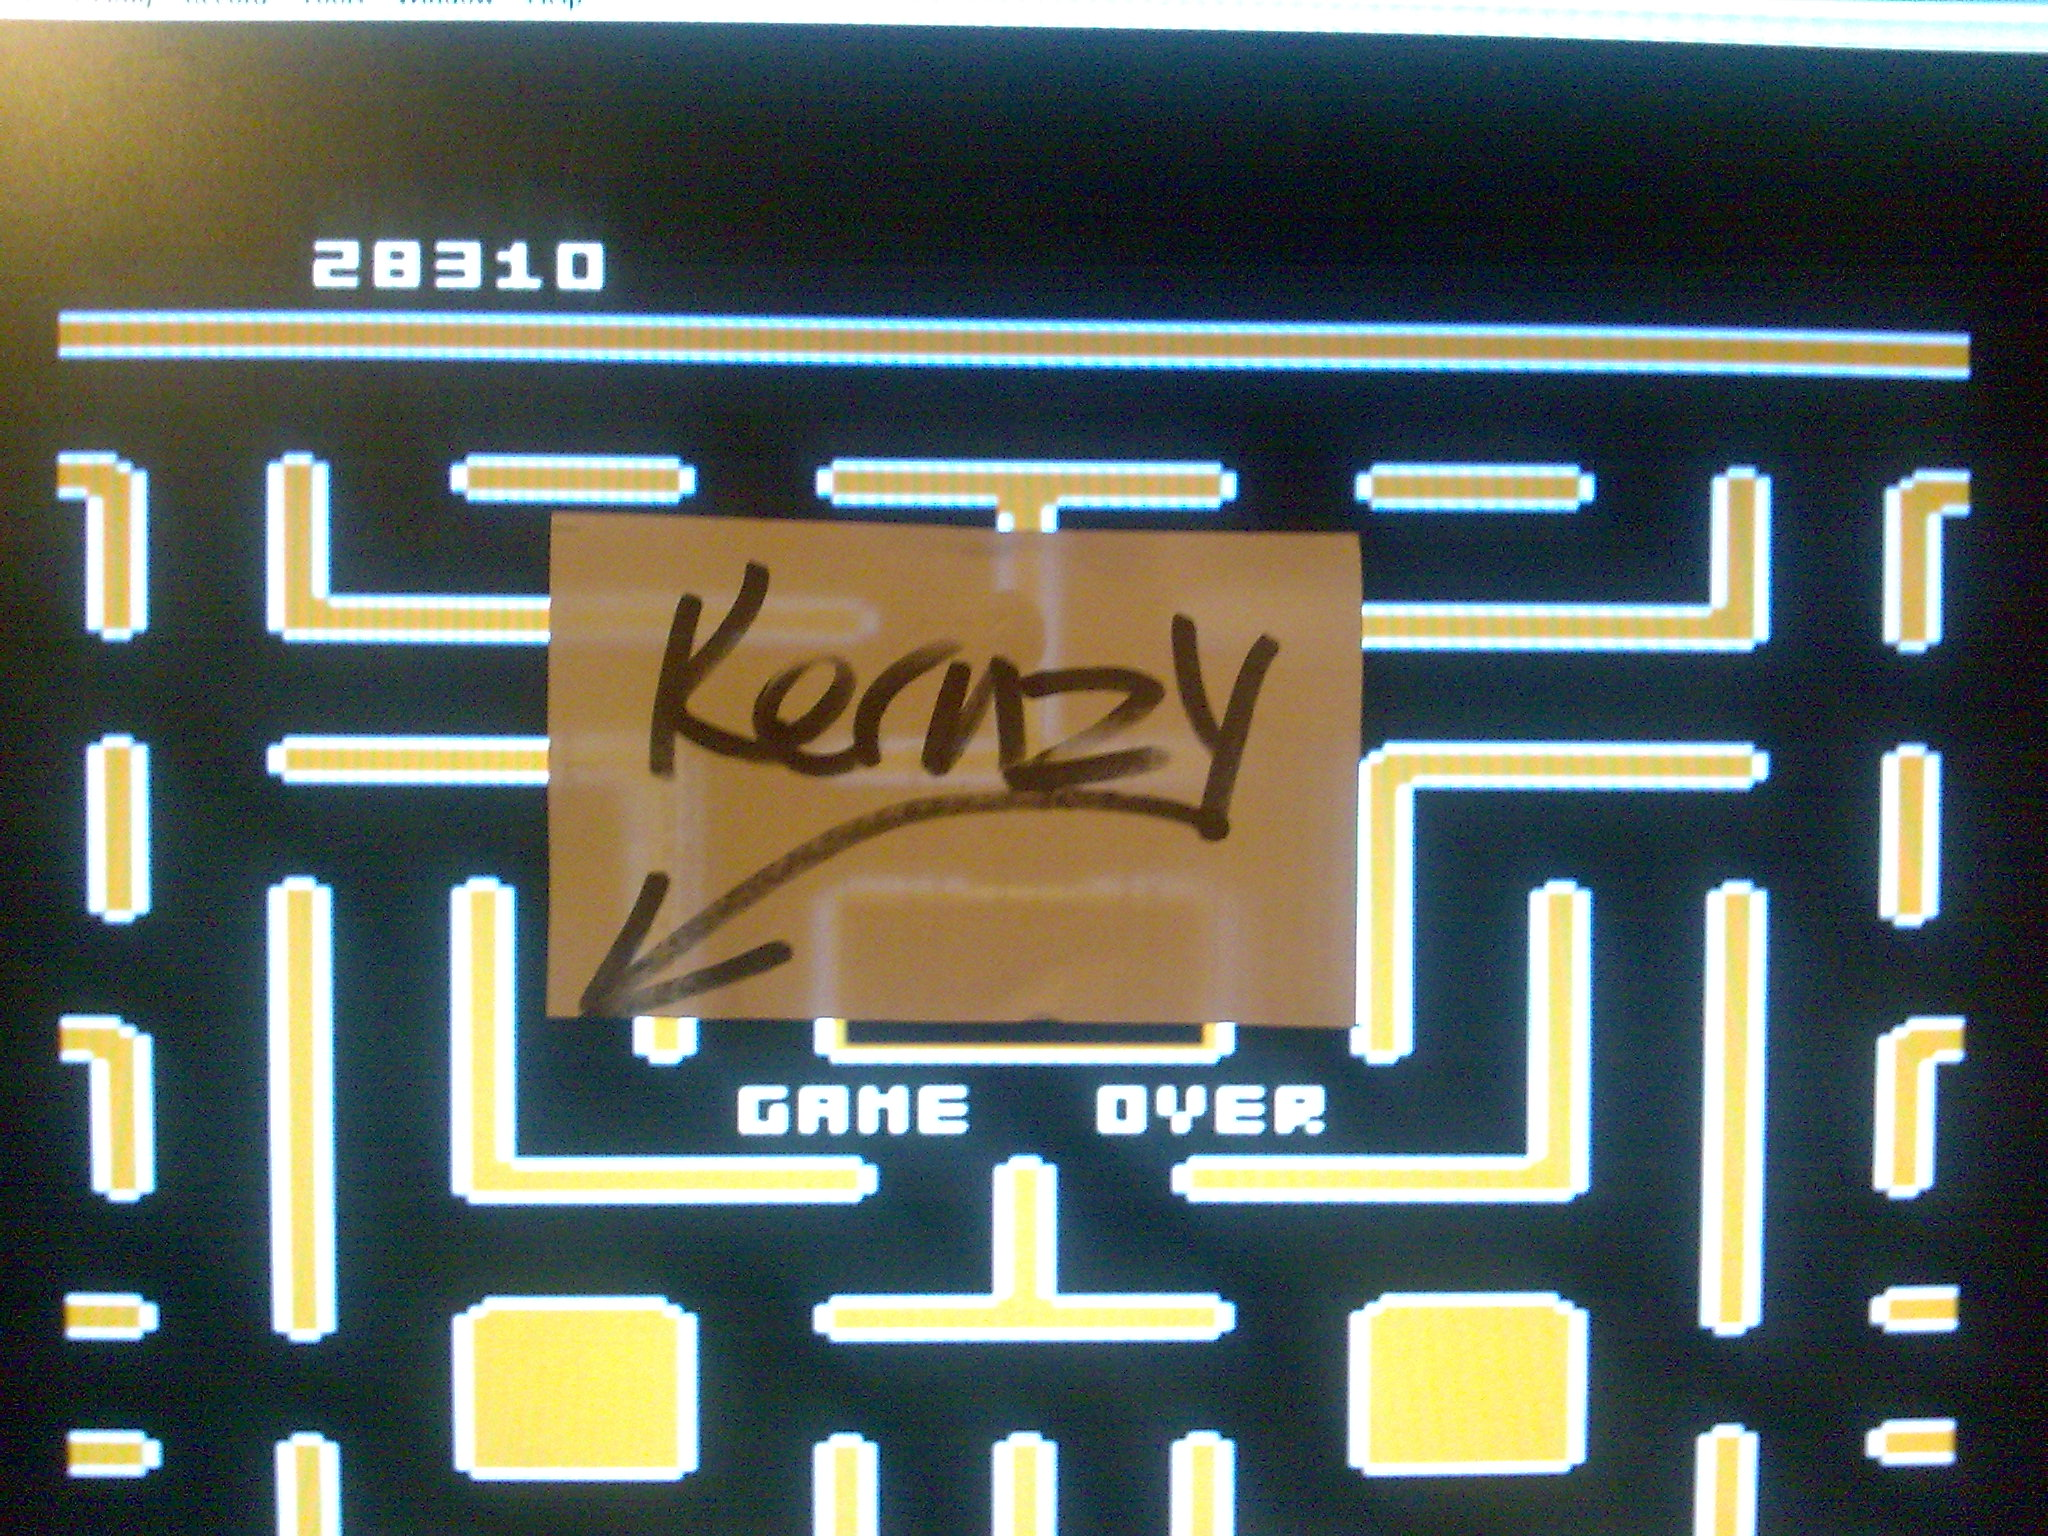 kernzy: Jr. Pac-Man (Atari 400/800/XL/XE Emulated) 28,310 points on 2014-10-15 12:10:13